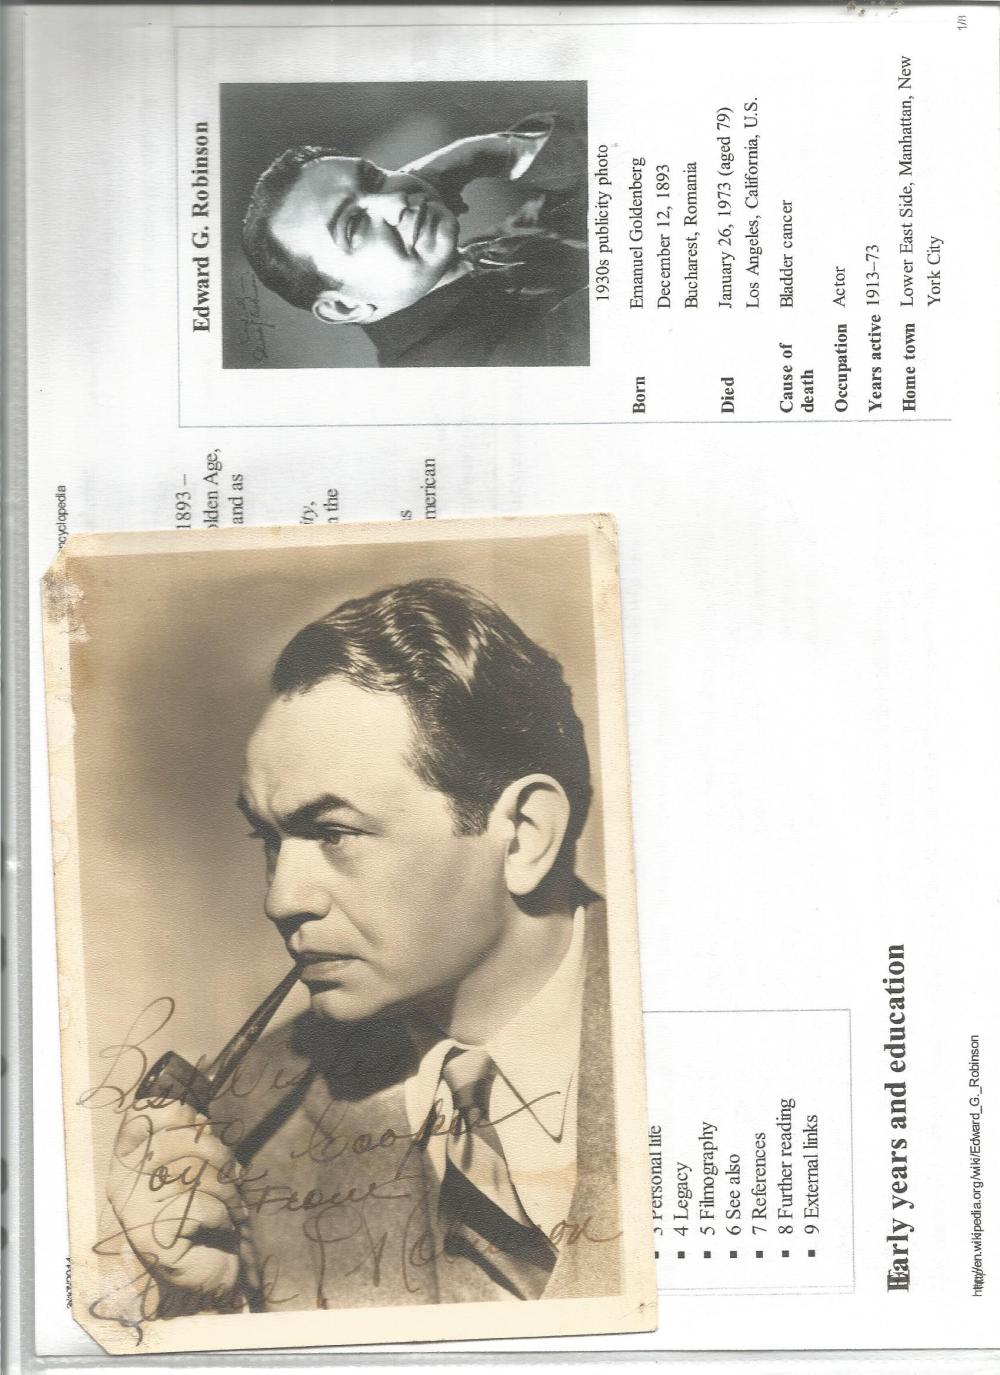 Edward G Robinson signed 6 x 4 sepia photo, dedicated with some bottom LH corner damage. Good